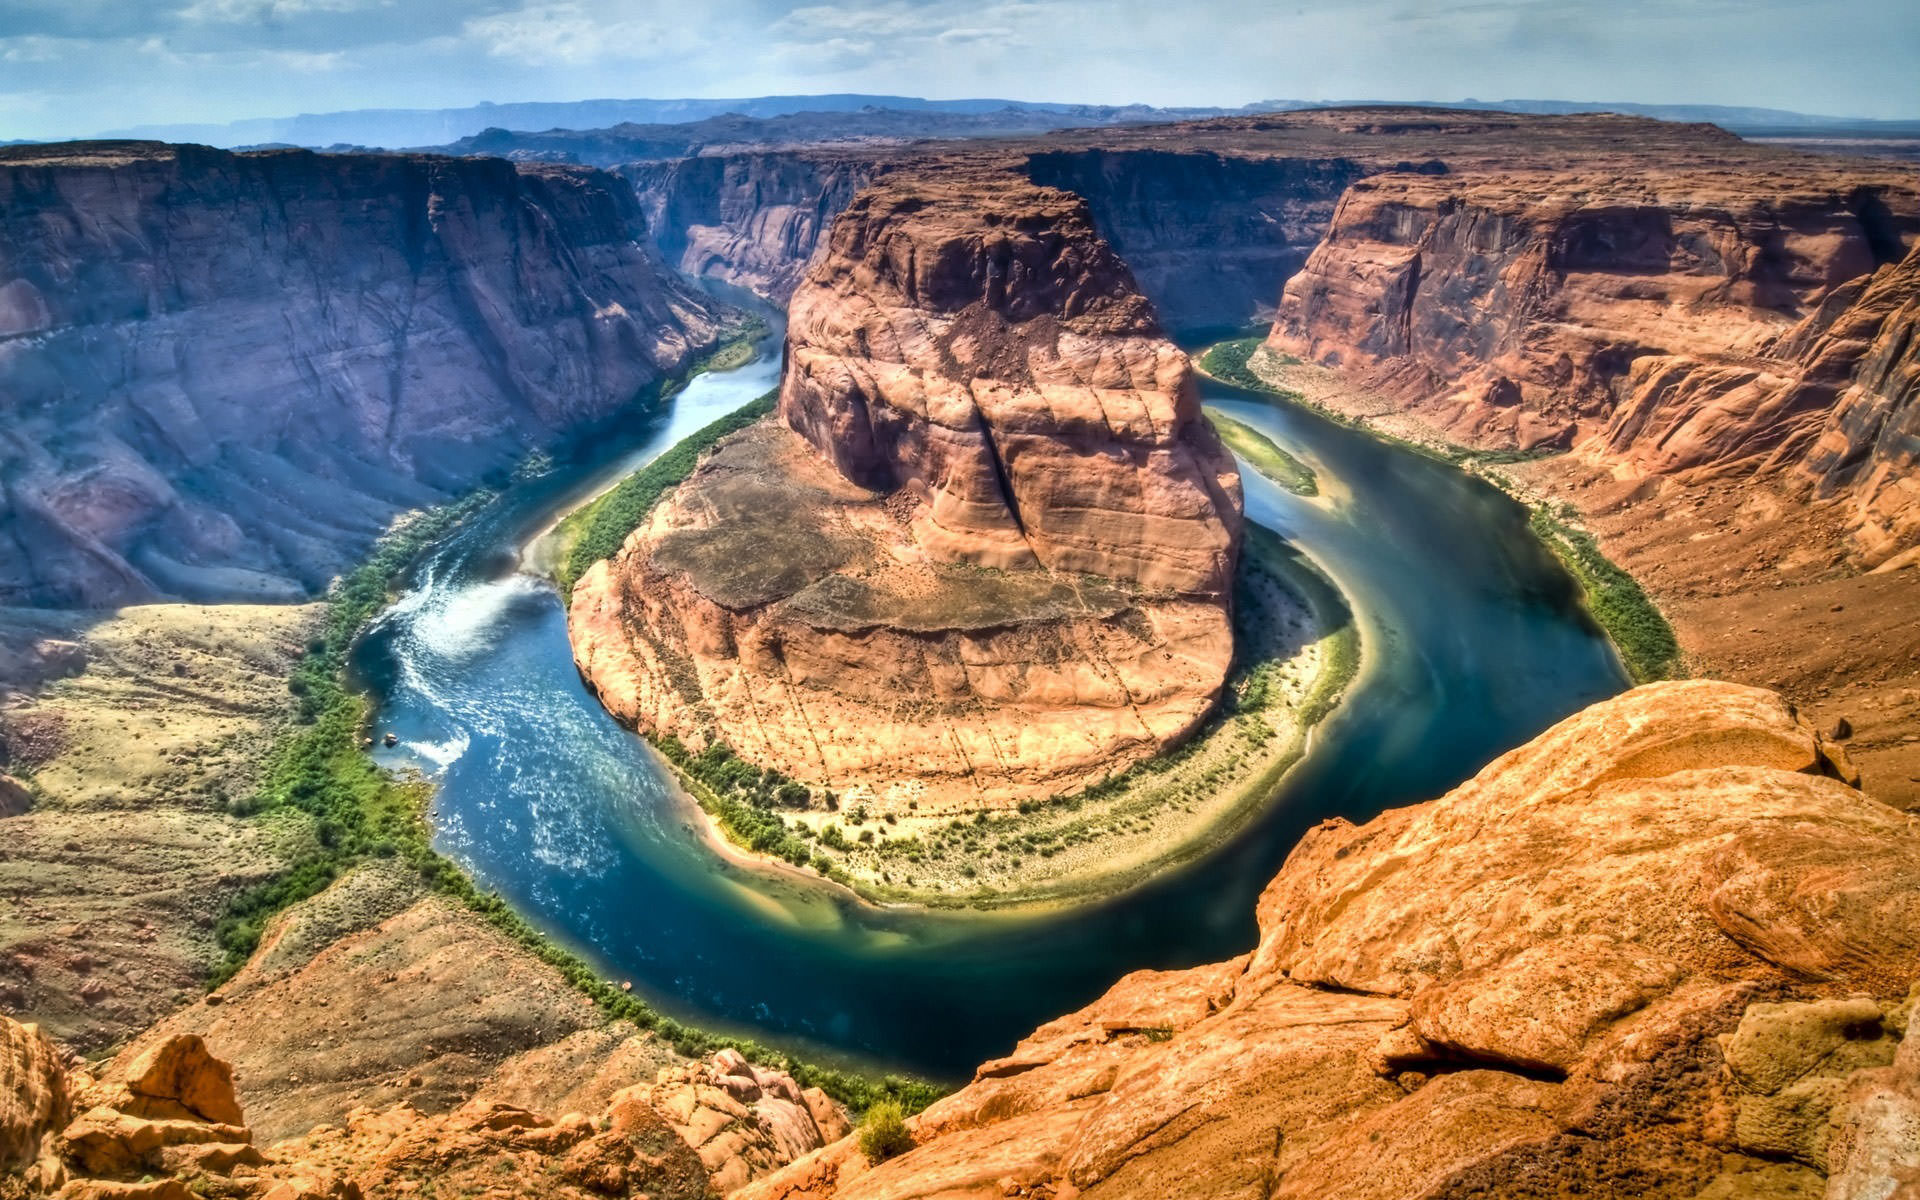 HORSHOE BEND in GRAND CANYON